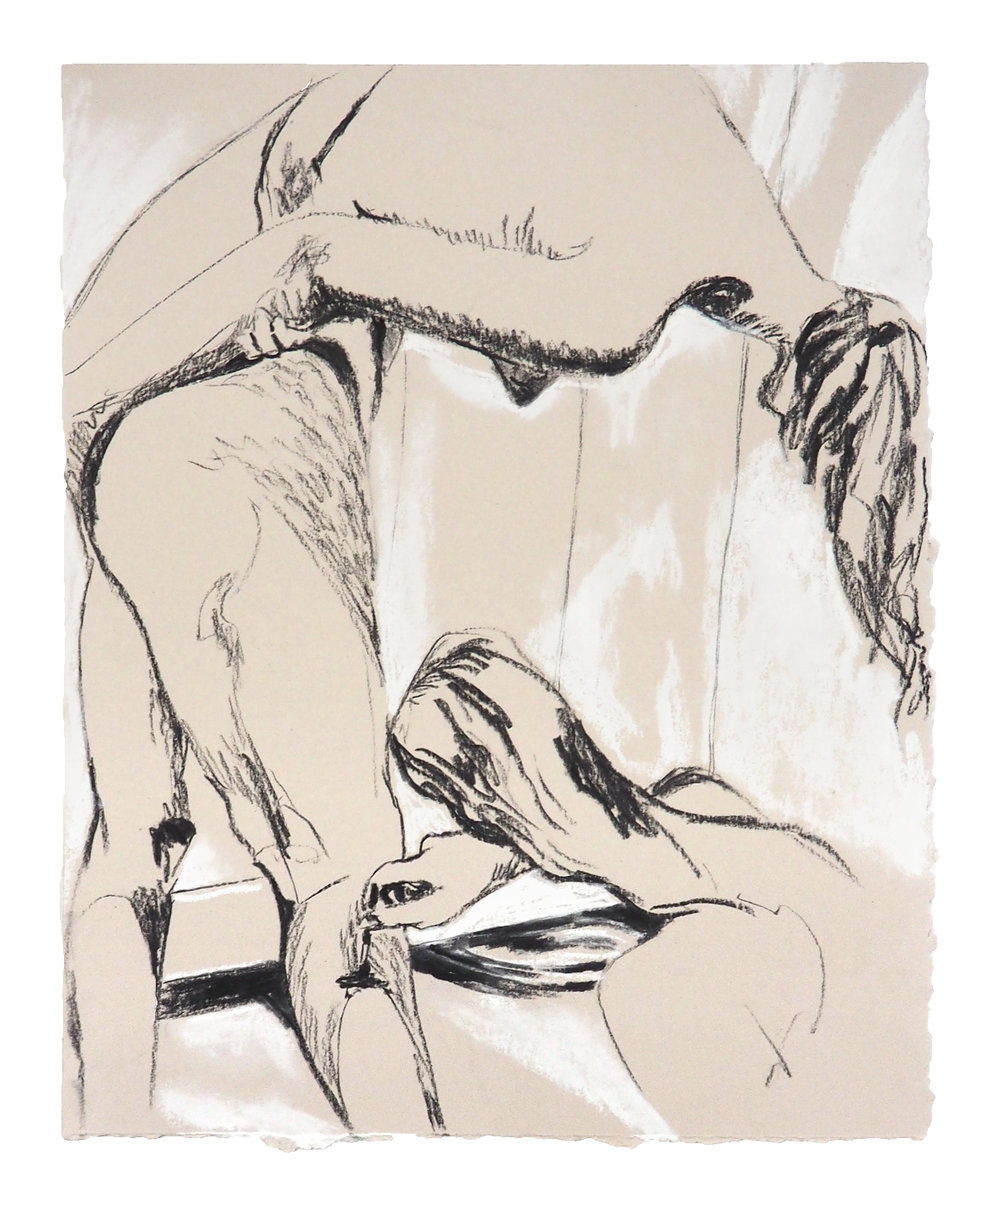 "TENDER GESTURES, RAZOR SHARP 11"" x 13"" Charcoal and Chalk Pastel on Paper $250.00 